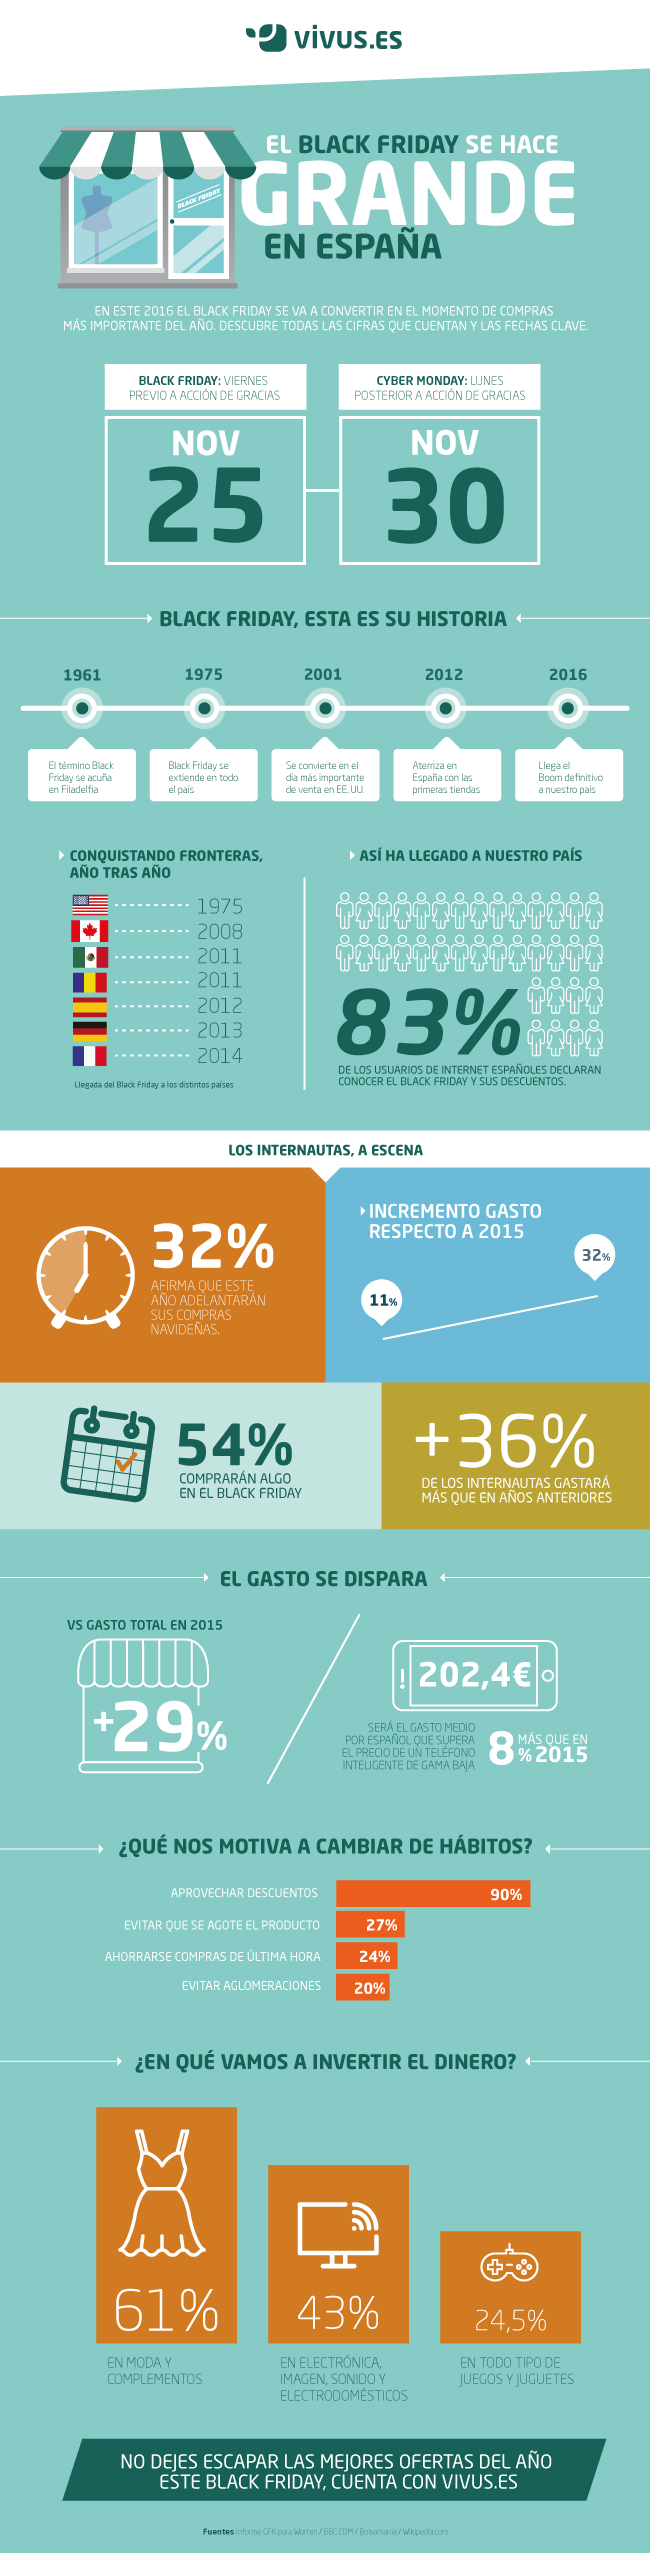 infografia black friday en cifras